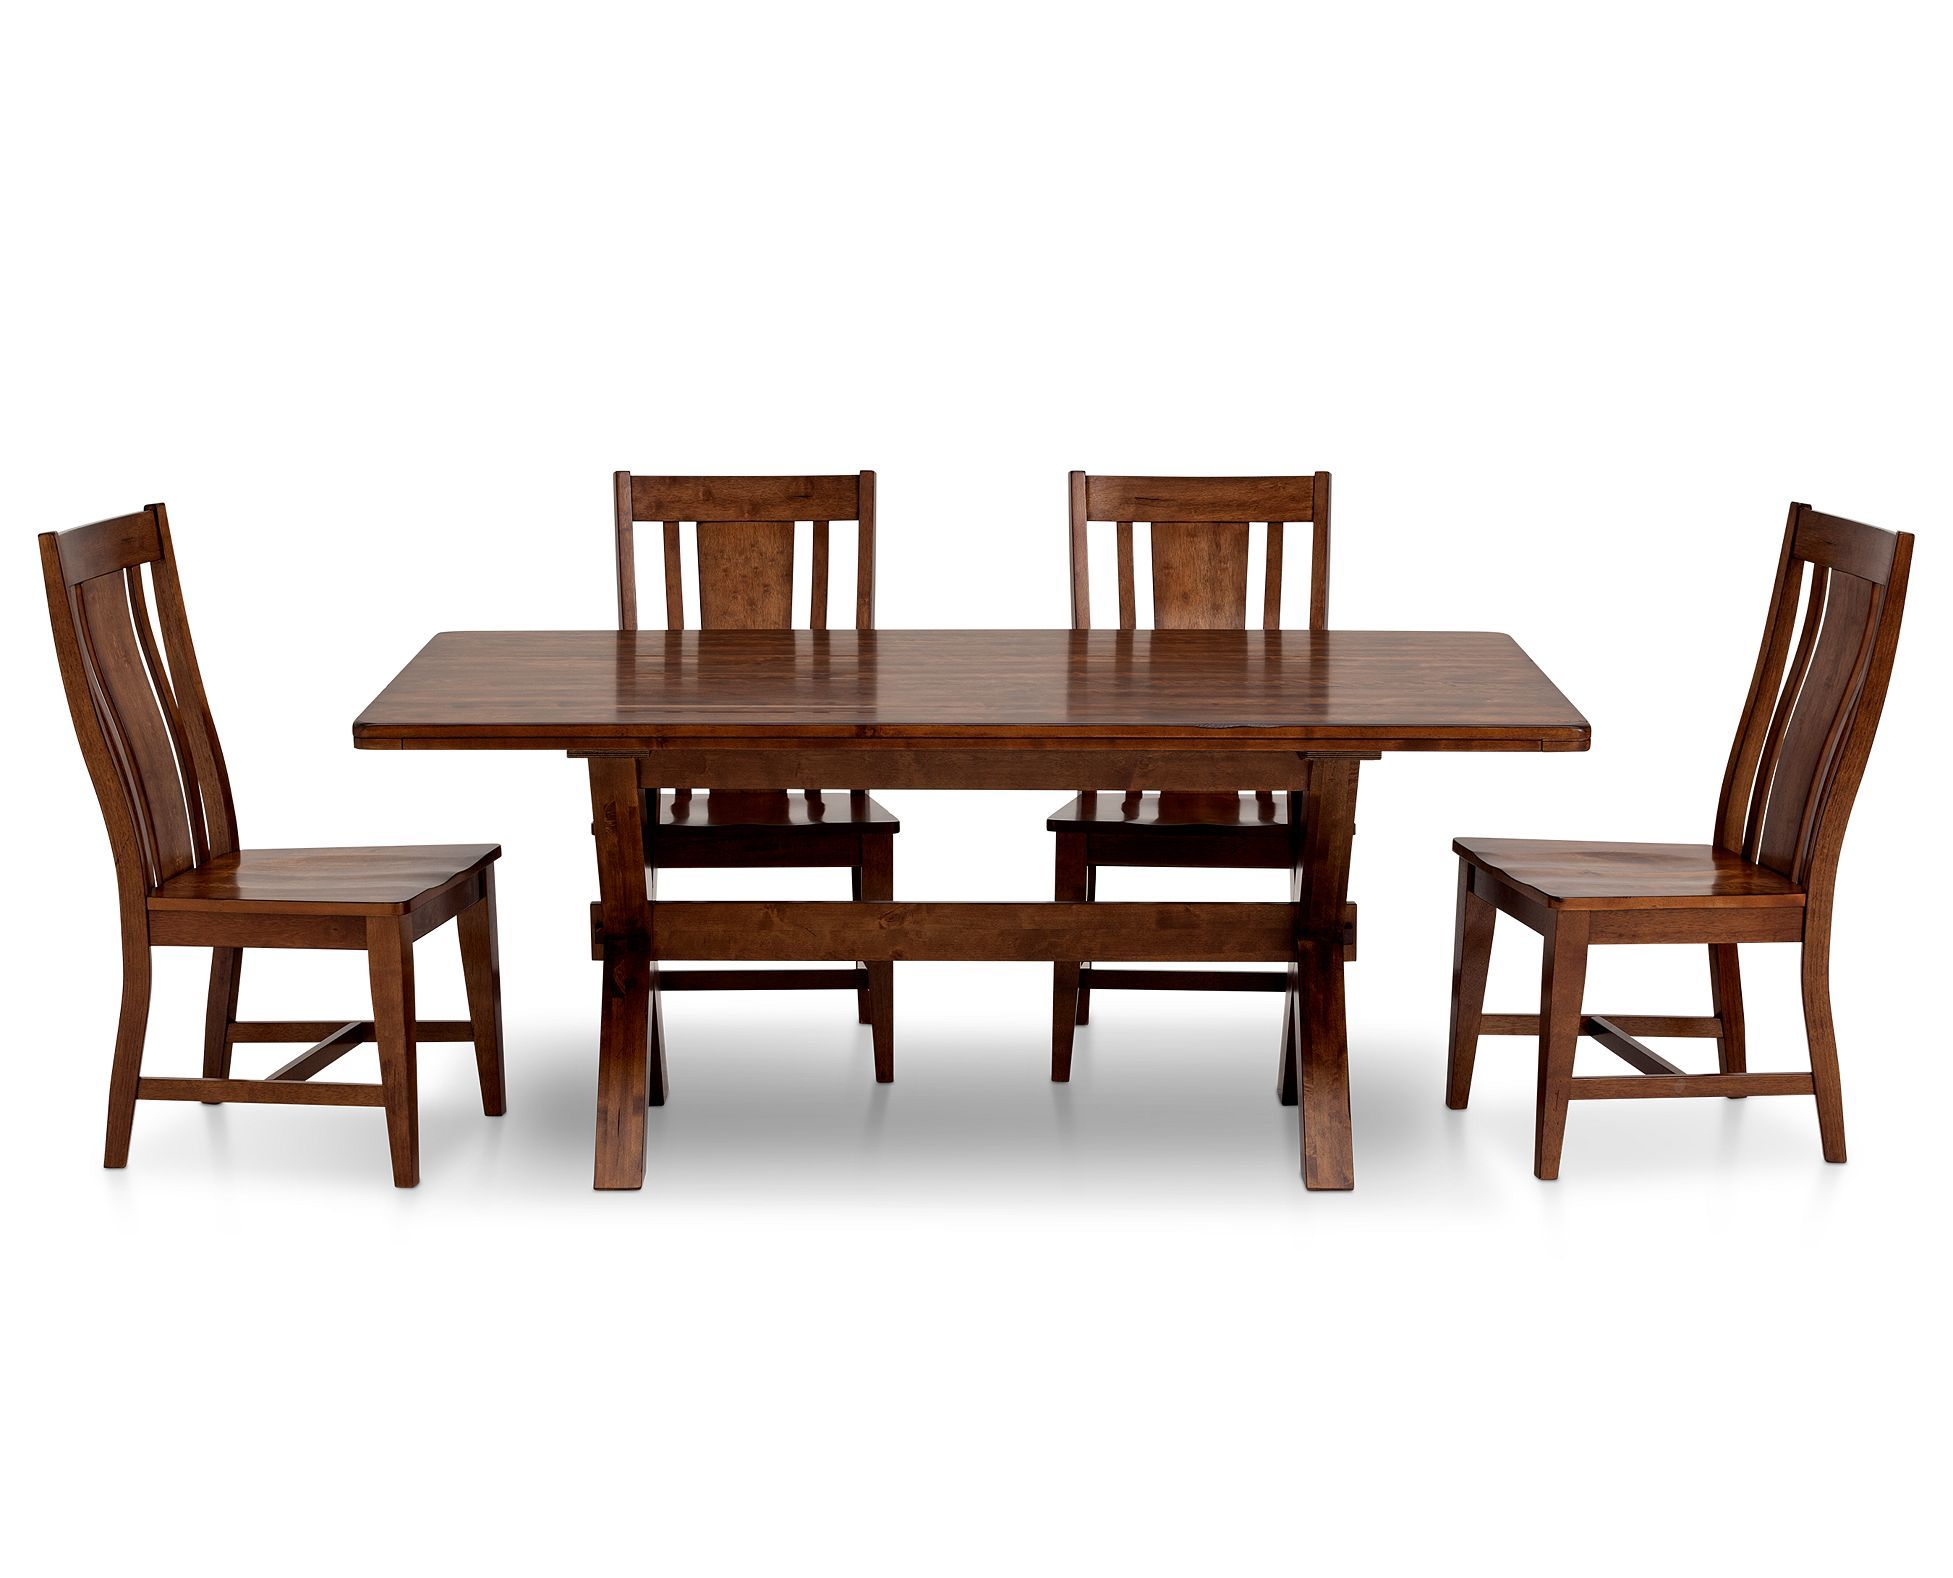 Waverly Picnic Dining Set With Slat Back Side Chairs Has Classic Trestle Design With X Shaped Details In Your Choice Of Brown Rowe Furniture Furniture Dining